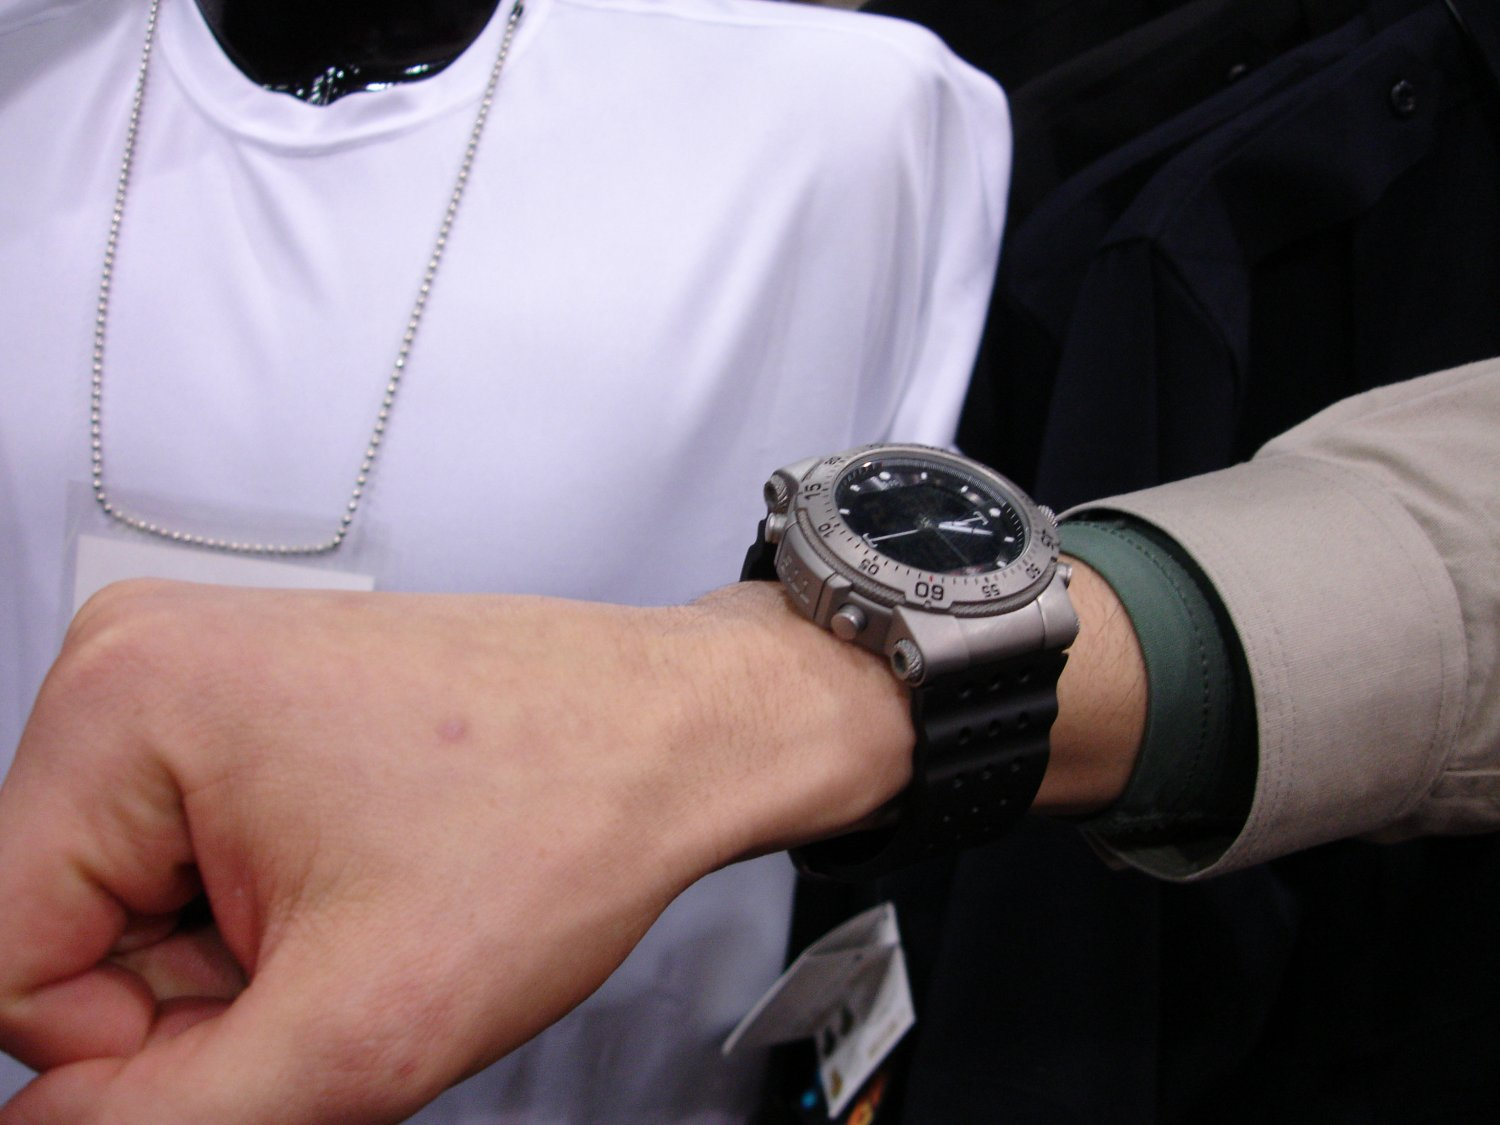 Tactical Watch Band - Compare Prices, Reviews and Buy at Nextag